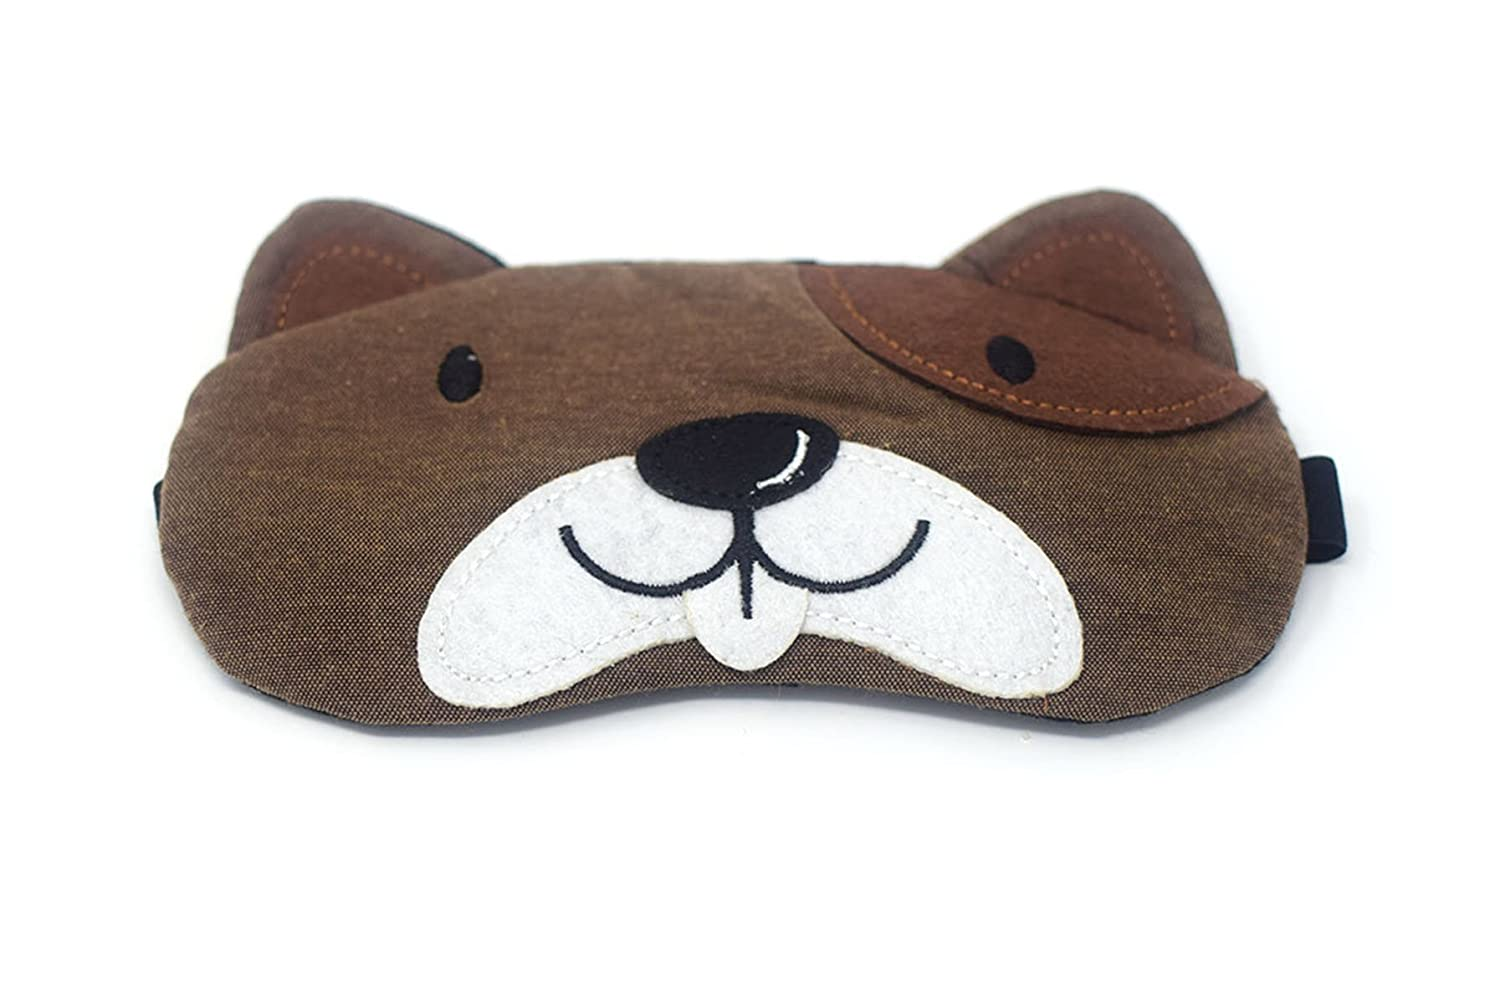 Dog Plush Sleep Eye Masks Animal Mask with Detachable Reusable Ice Pack Hot Cold  Gel Perfect for Use as a Warm or Cold Compress for Tired Puffy Swollen Eyes  ... 7da97360b3